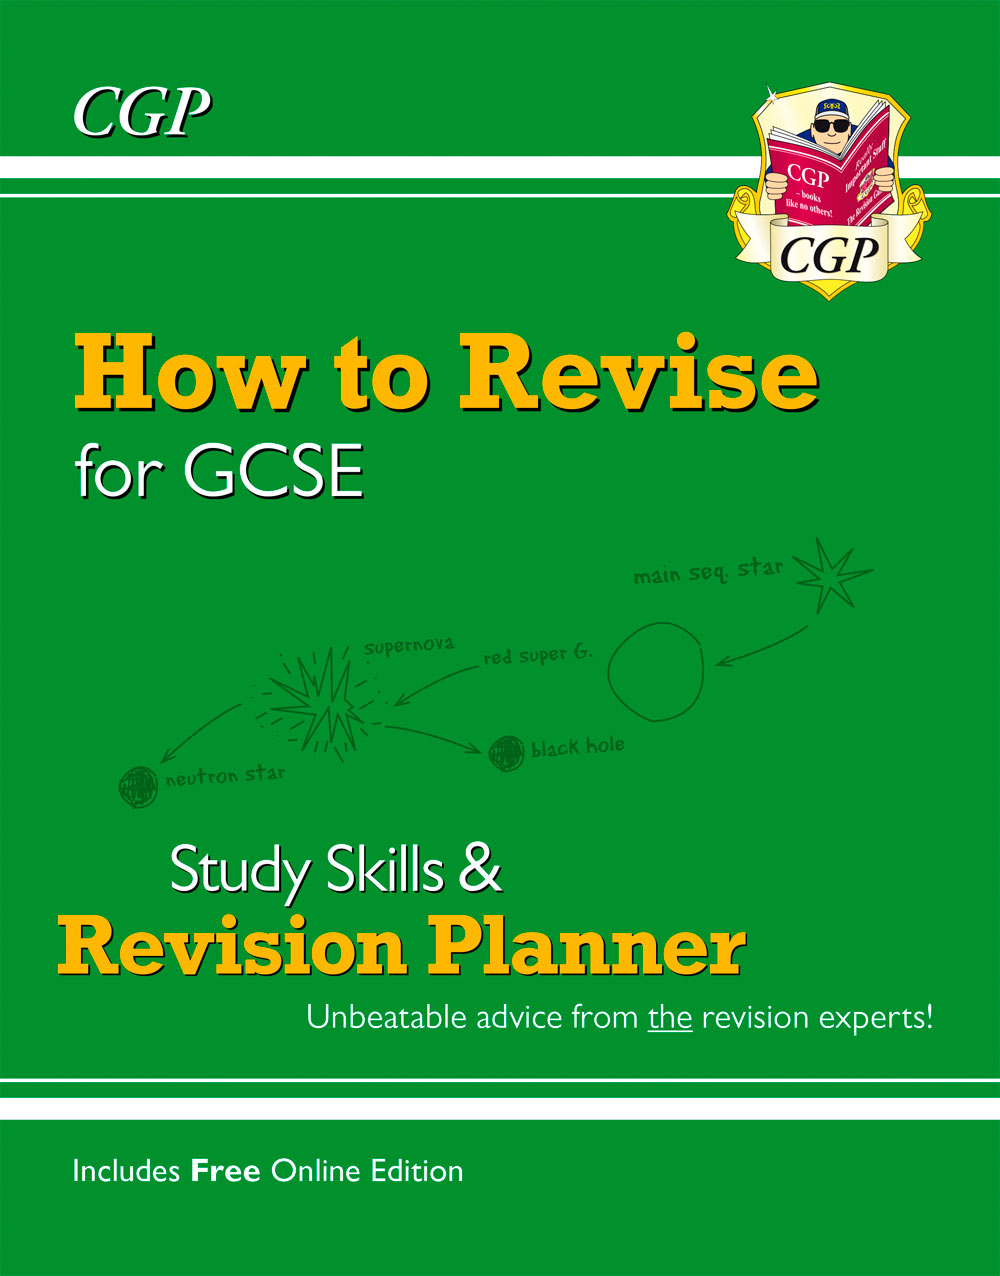 XHR41 - How to Revise for GCSE: Study Skills & Planner - from CGP, the Revision Experts (inc Online